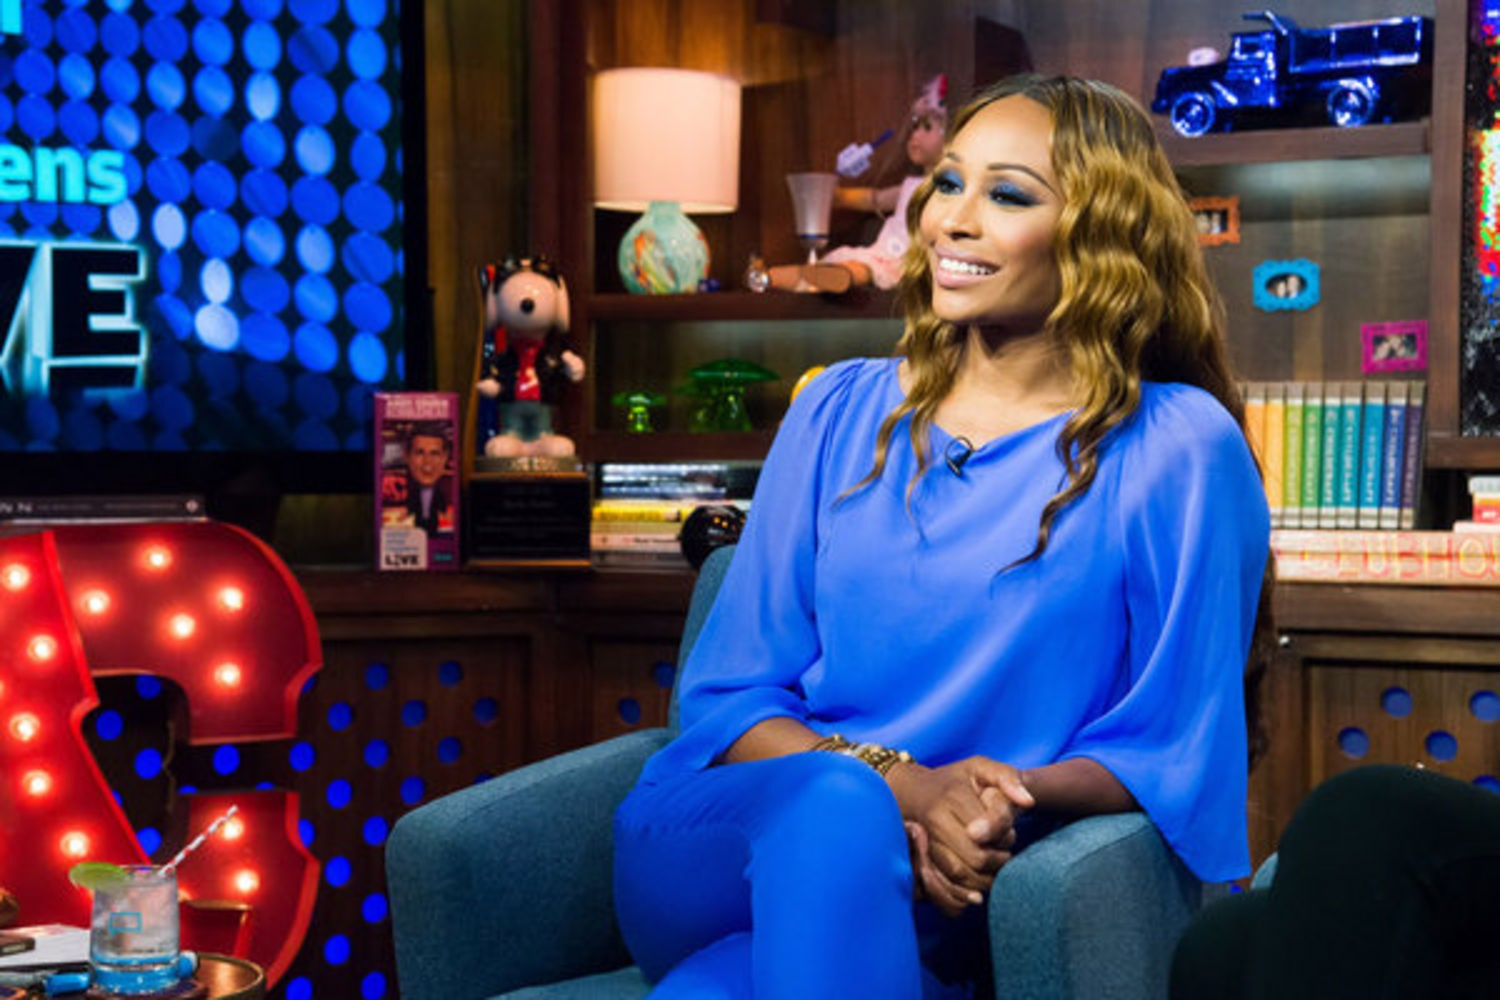 cynthia-bailey-is-filled-with-good-vibes-check-out-her-photos